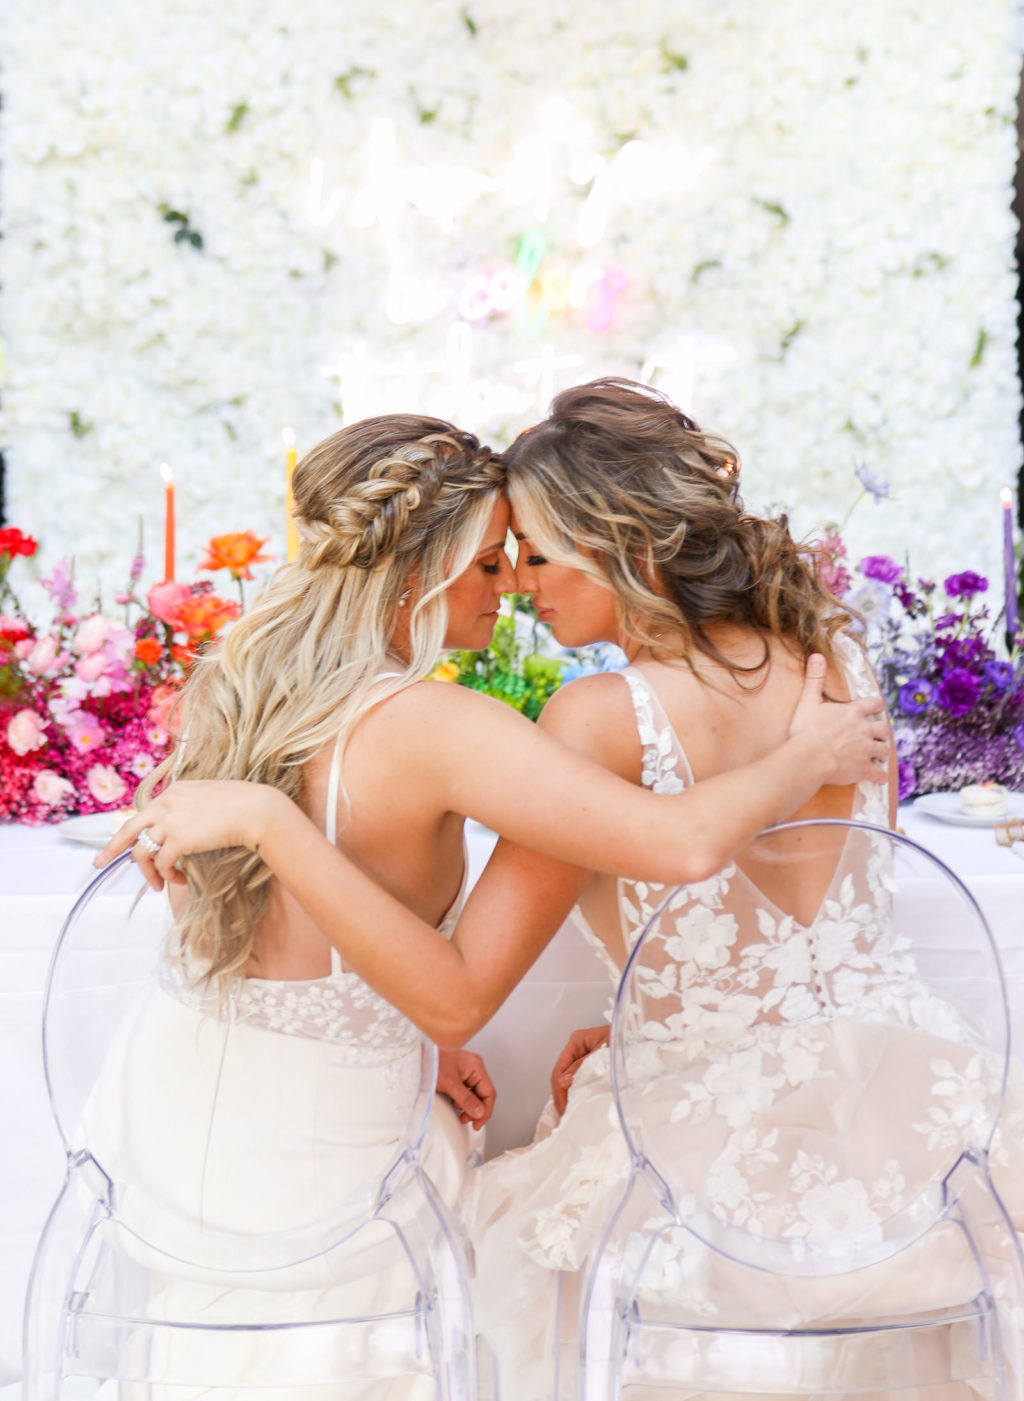 Colorful Rainbow Modern Gay LGBTQ+ Wedding Reception Decor, Lesbian Brides Sitting in Acrylic Ghost Chairs, White Flower Backdrop with Neon Sign, Pink, Red, Orange, Green, Yellow, Purple Flower Centerpiece   Tampa Bay Wedding Planner Stephany Perry Events